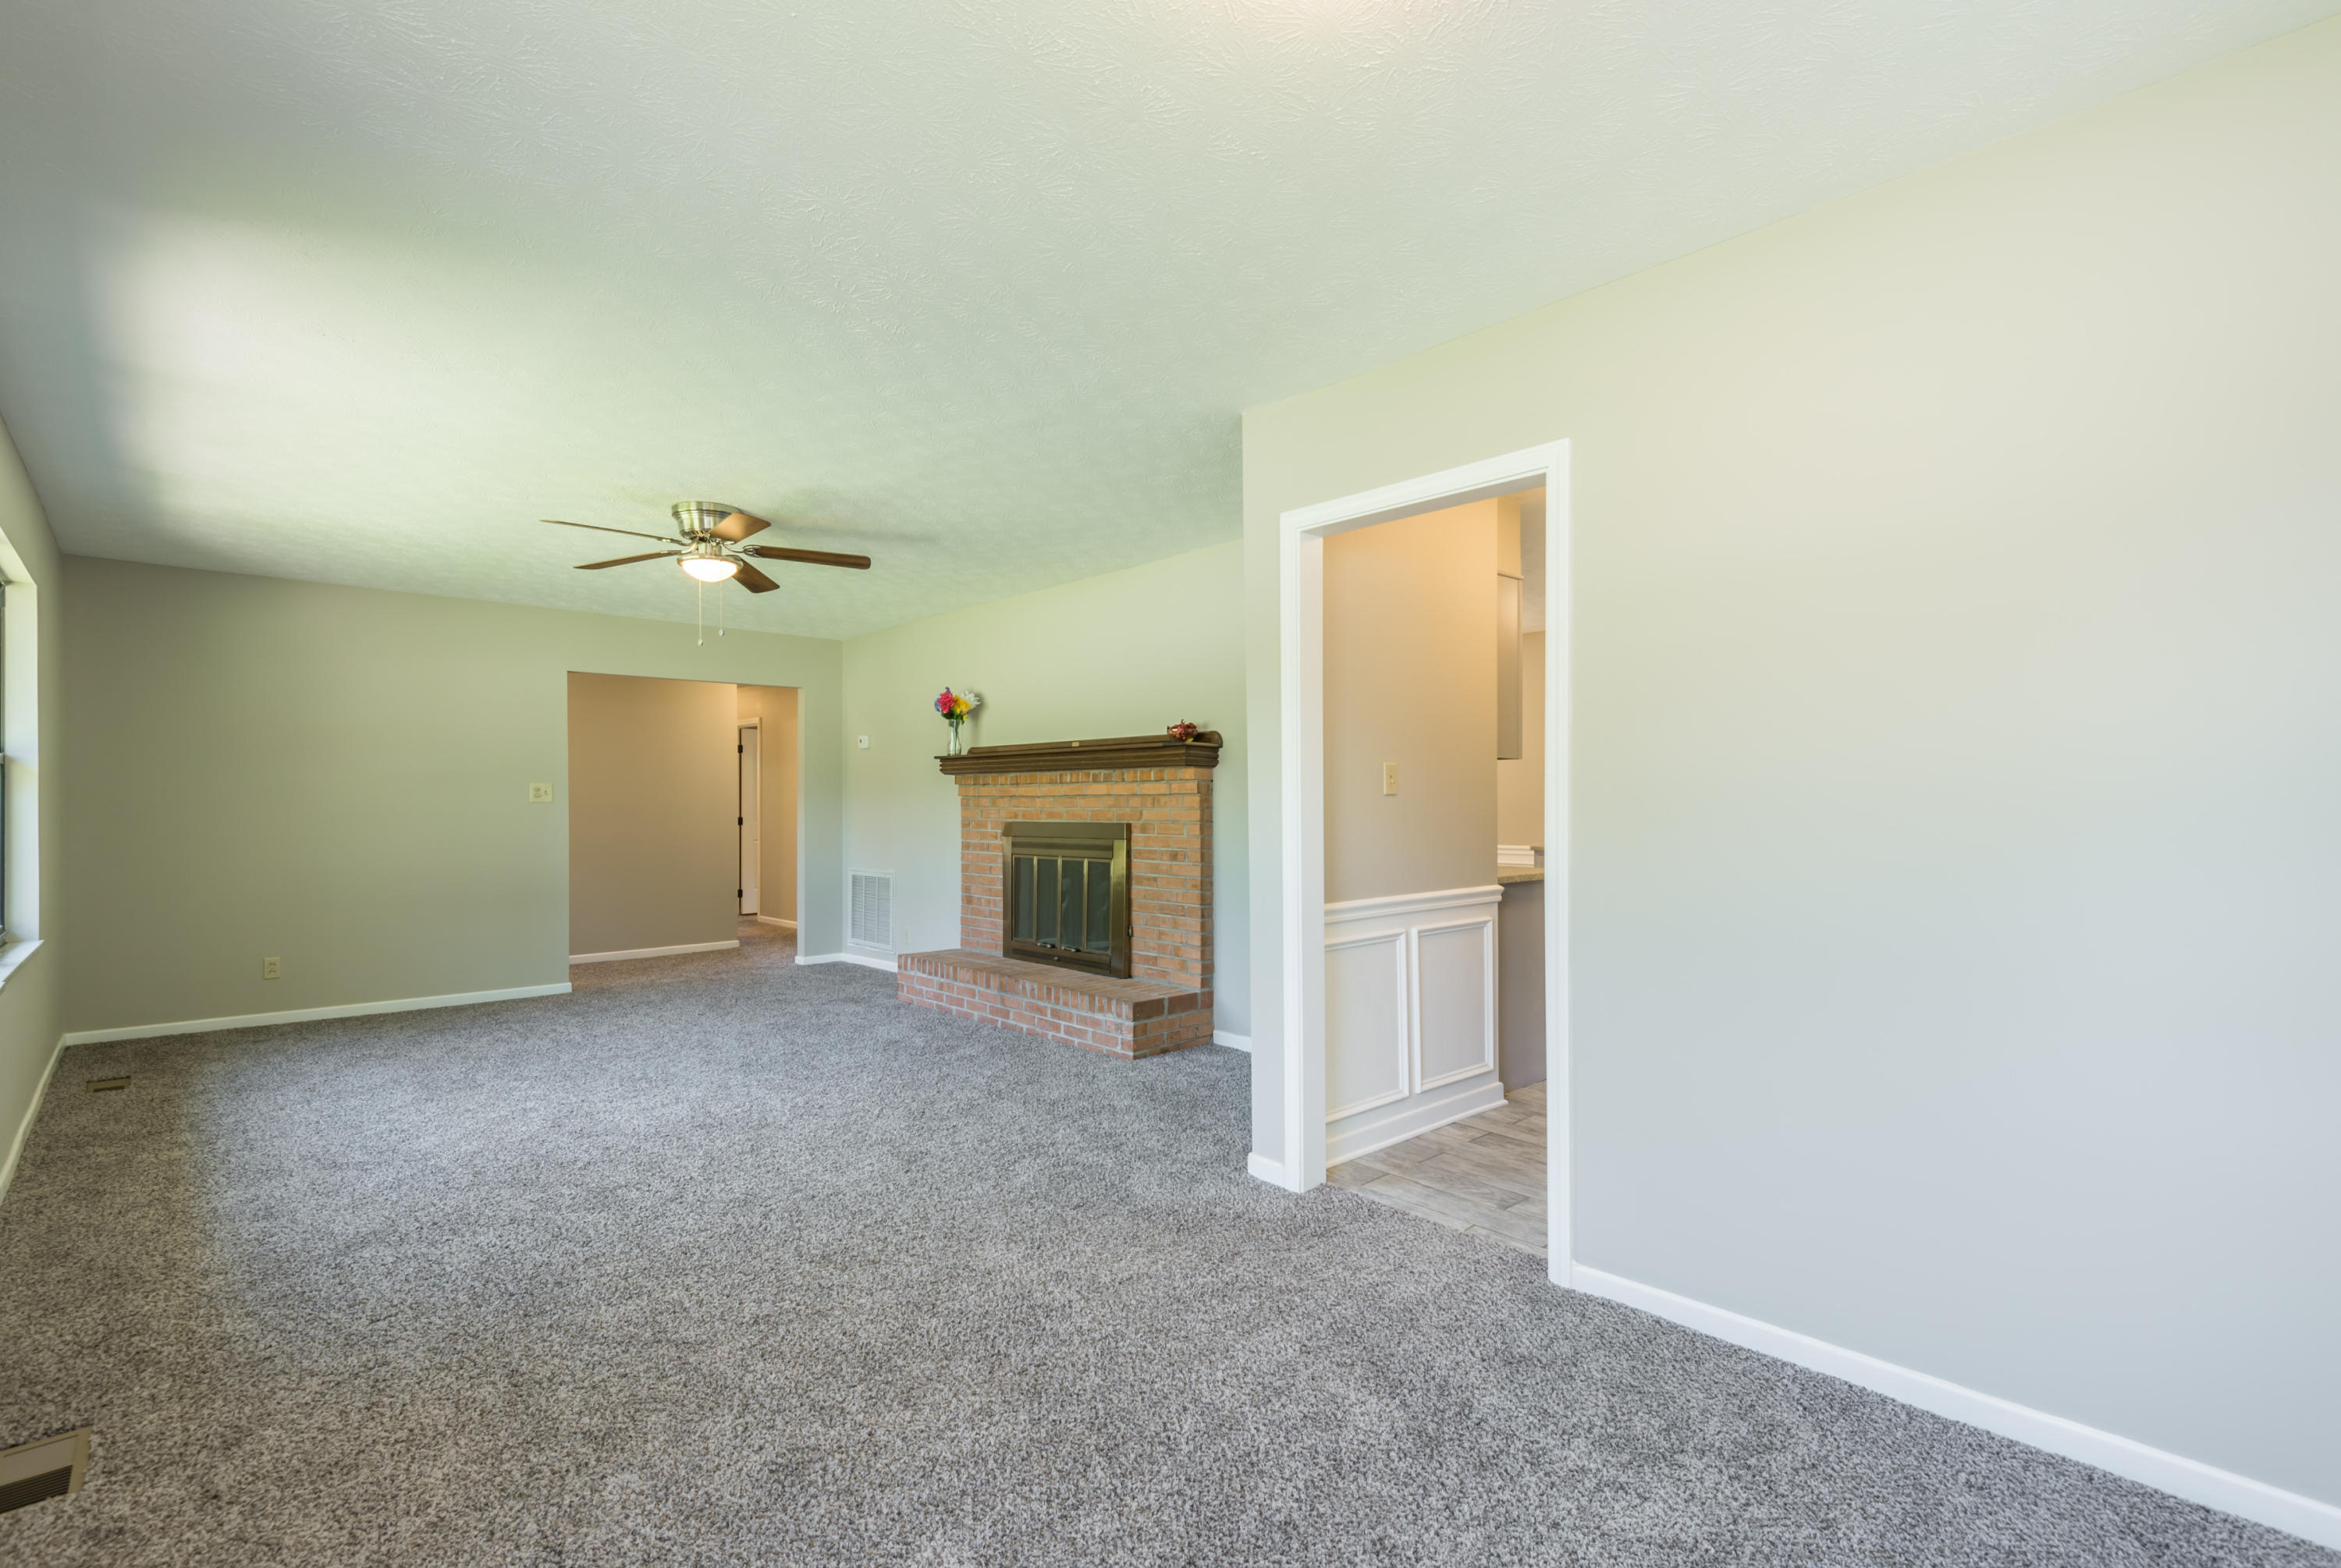 3144 Culpepper, Knoxville, Tennessee, United States 37917, 3 Bedrooms Bedrooms, ,3 BathroomsBathrooms,Single Family,For Sale,Culpepper,1046848